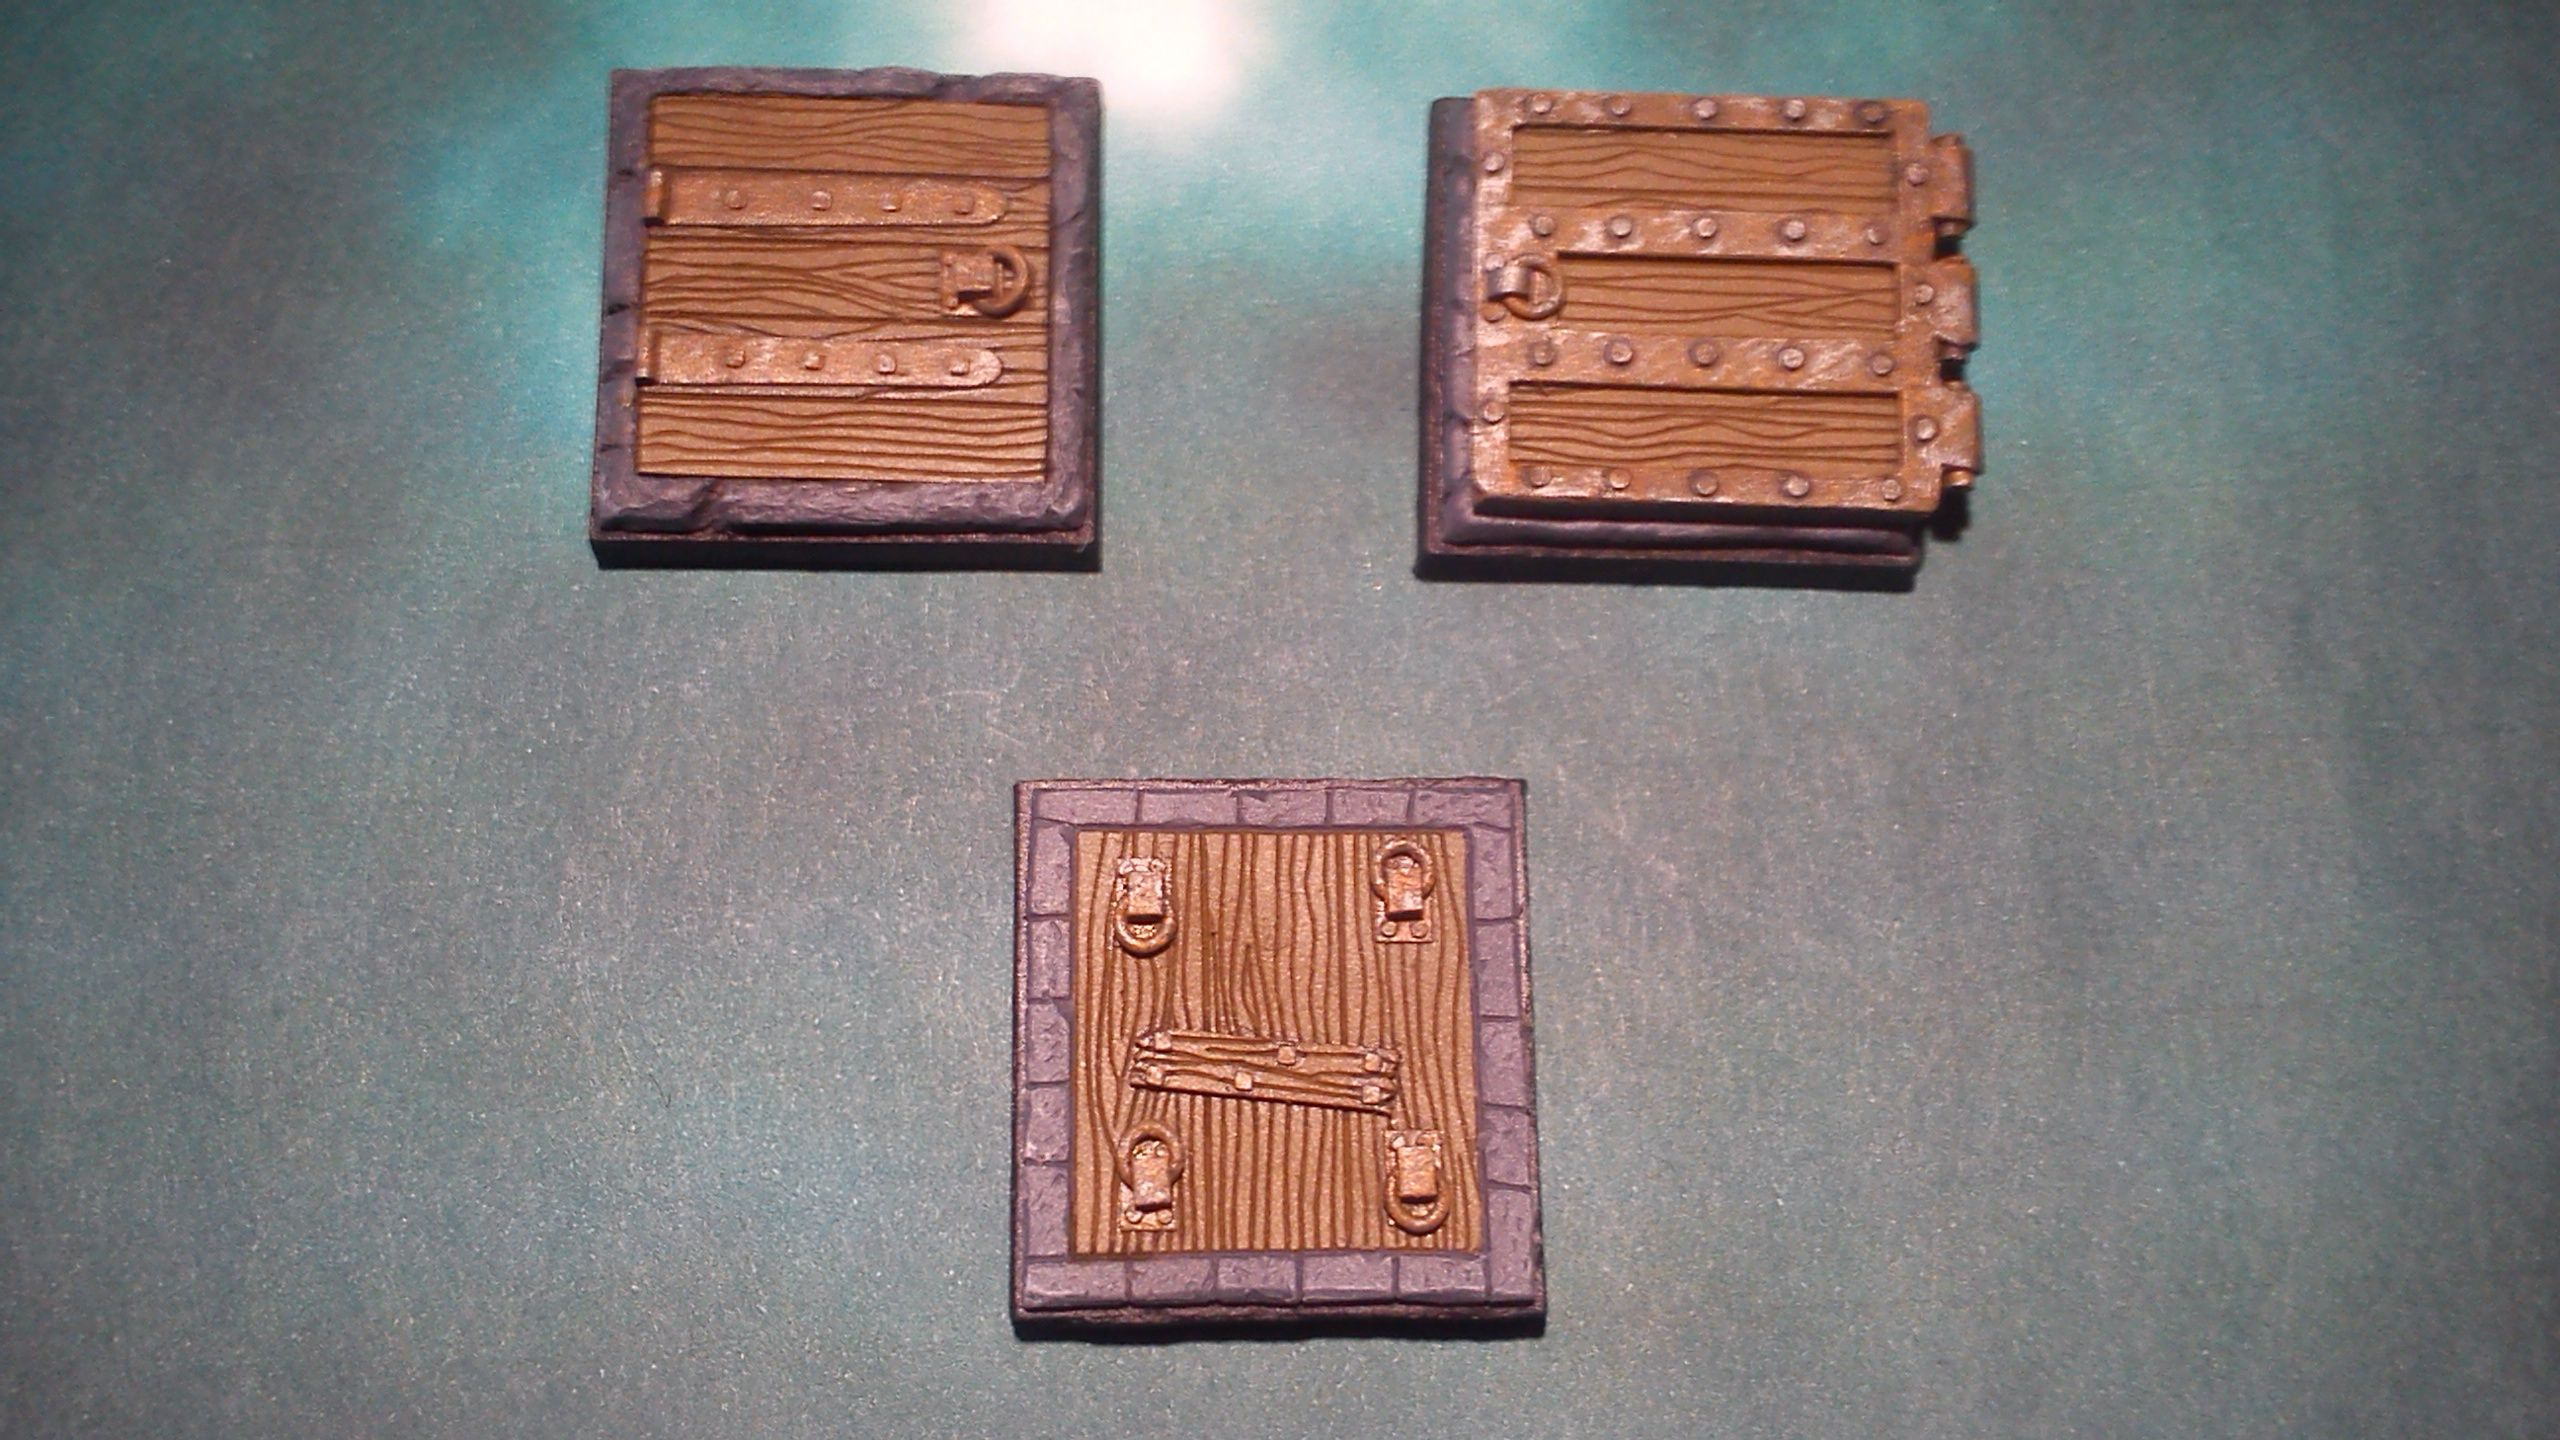 Trapdoors Sized 1x1 the small tiles